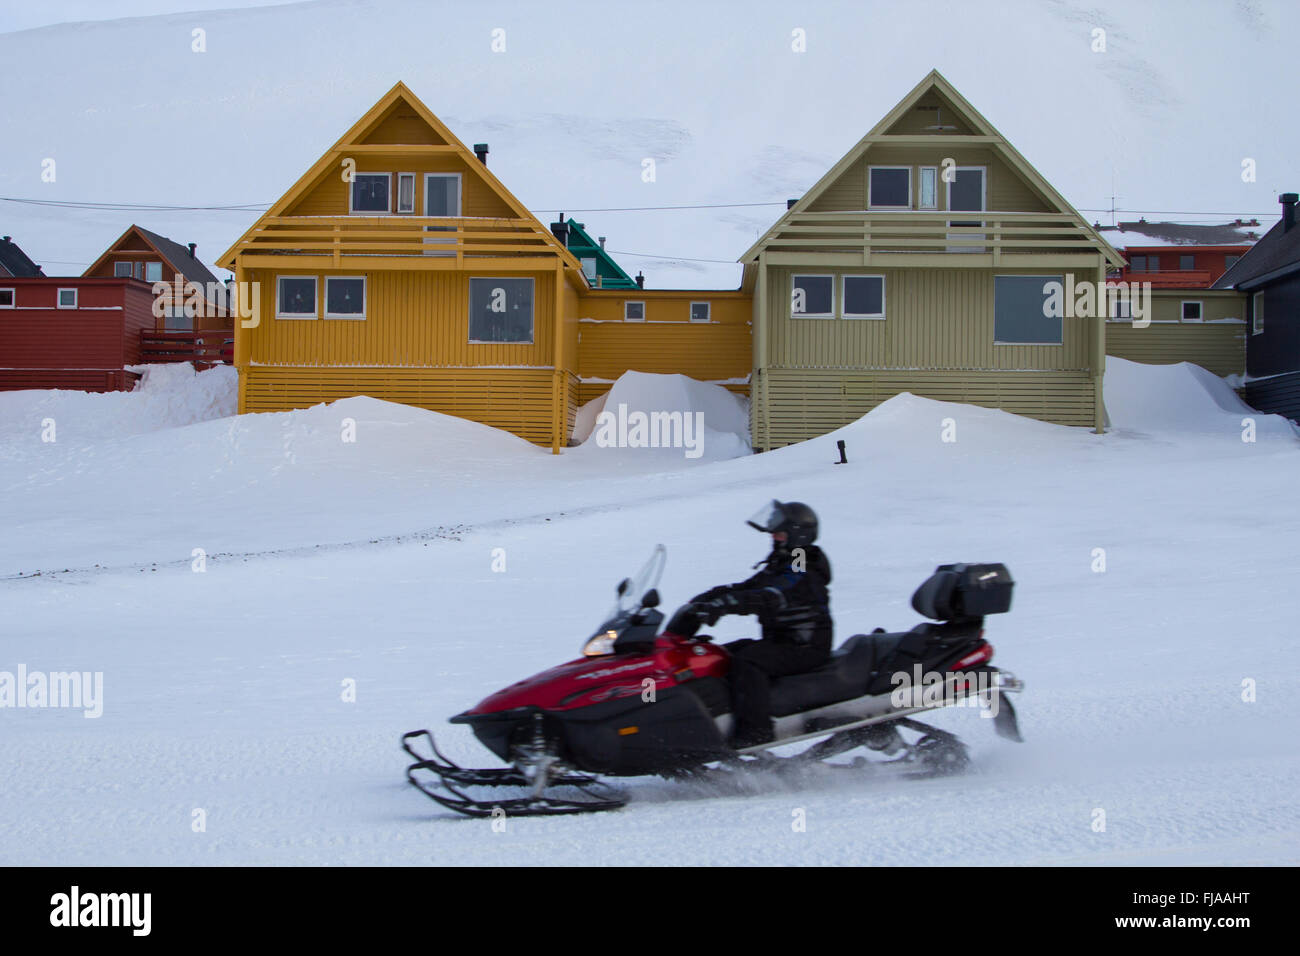 A city details of Longyearbyen - the most Northern settlement in the world. Spitsbergen (Svalbard), Norway. - Stock Image